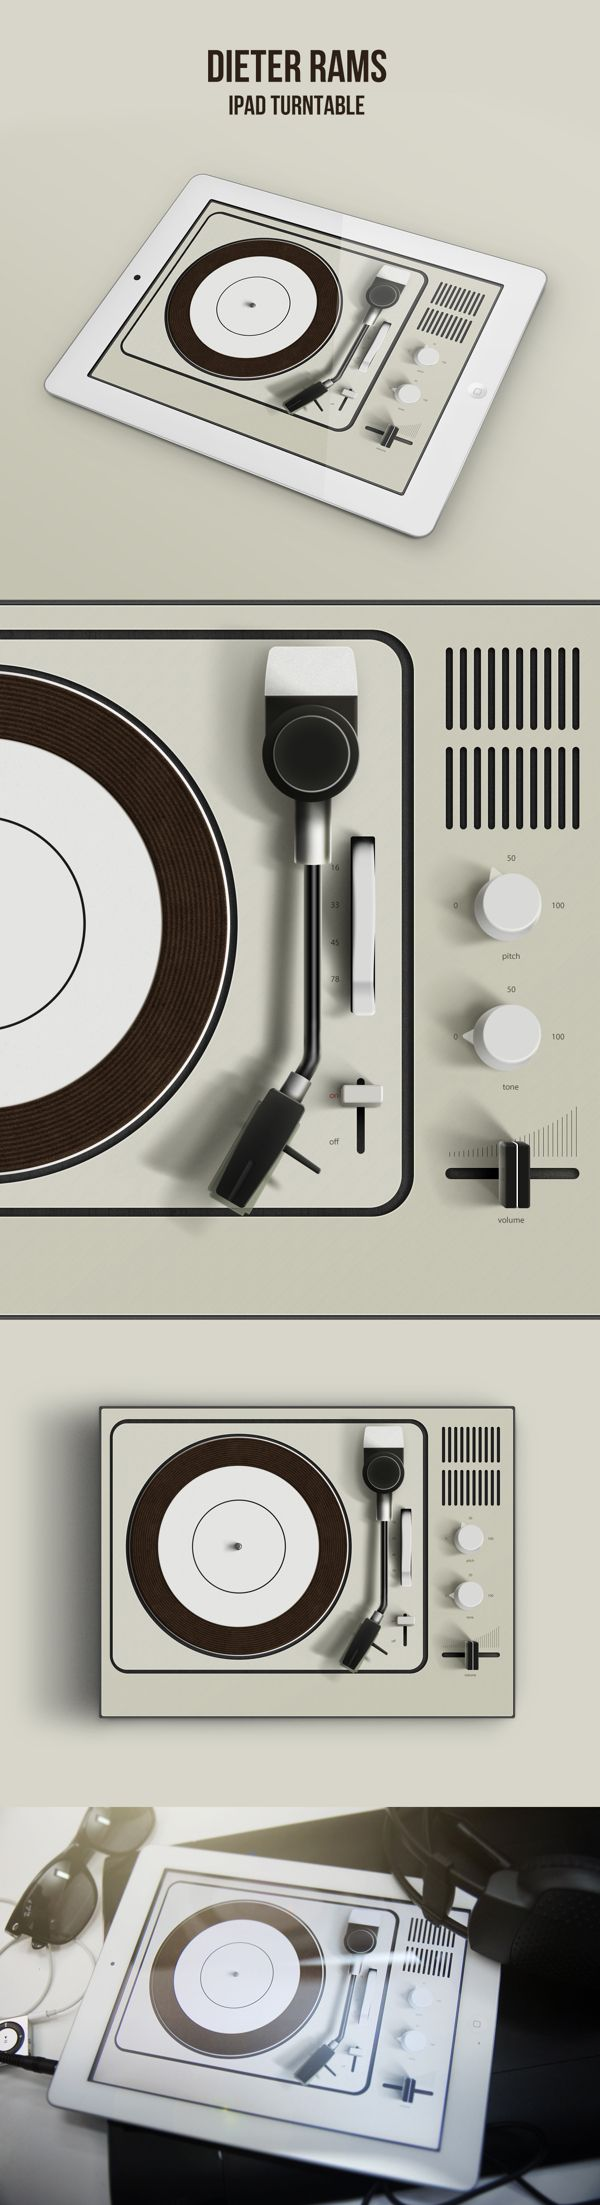 Dieter Rams Ipad Turntable by Denis Shepovalov, via Behance